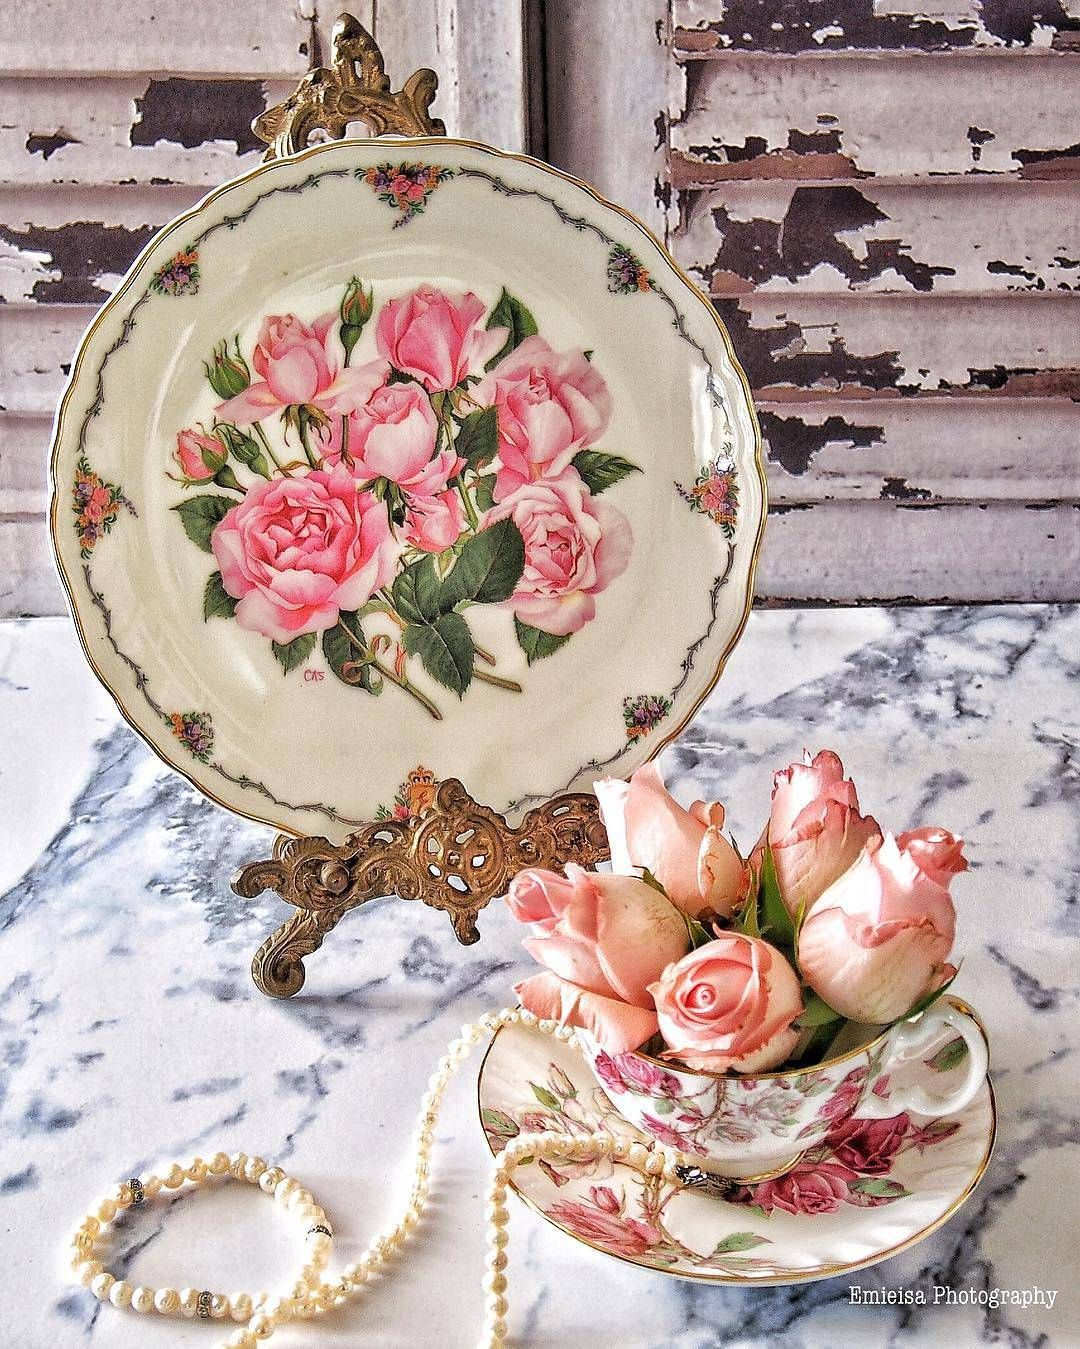 Vintage plate and roses